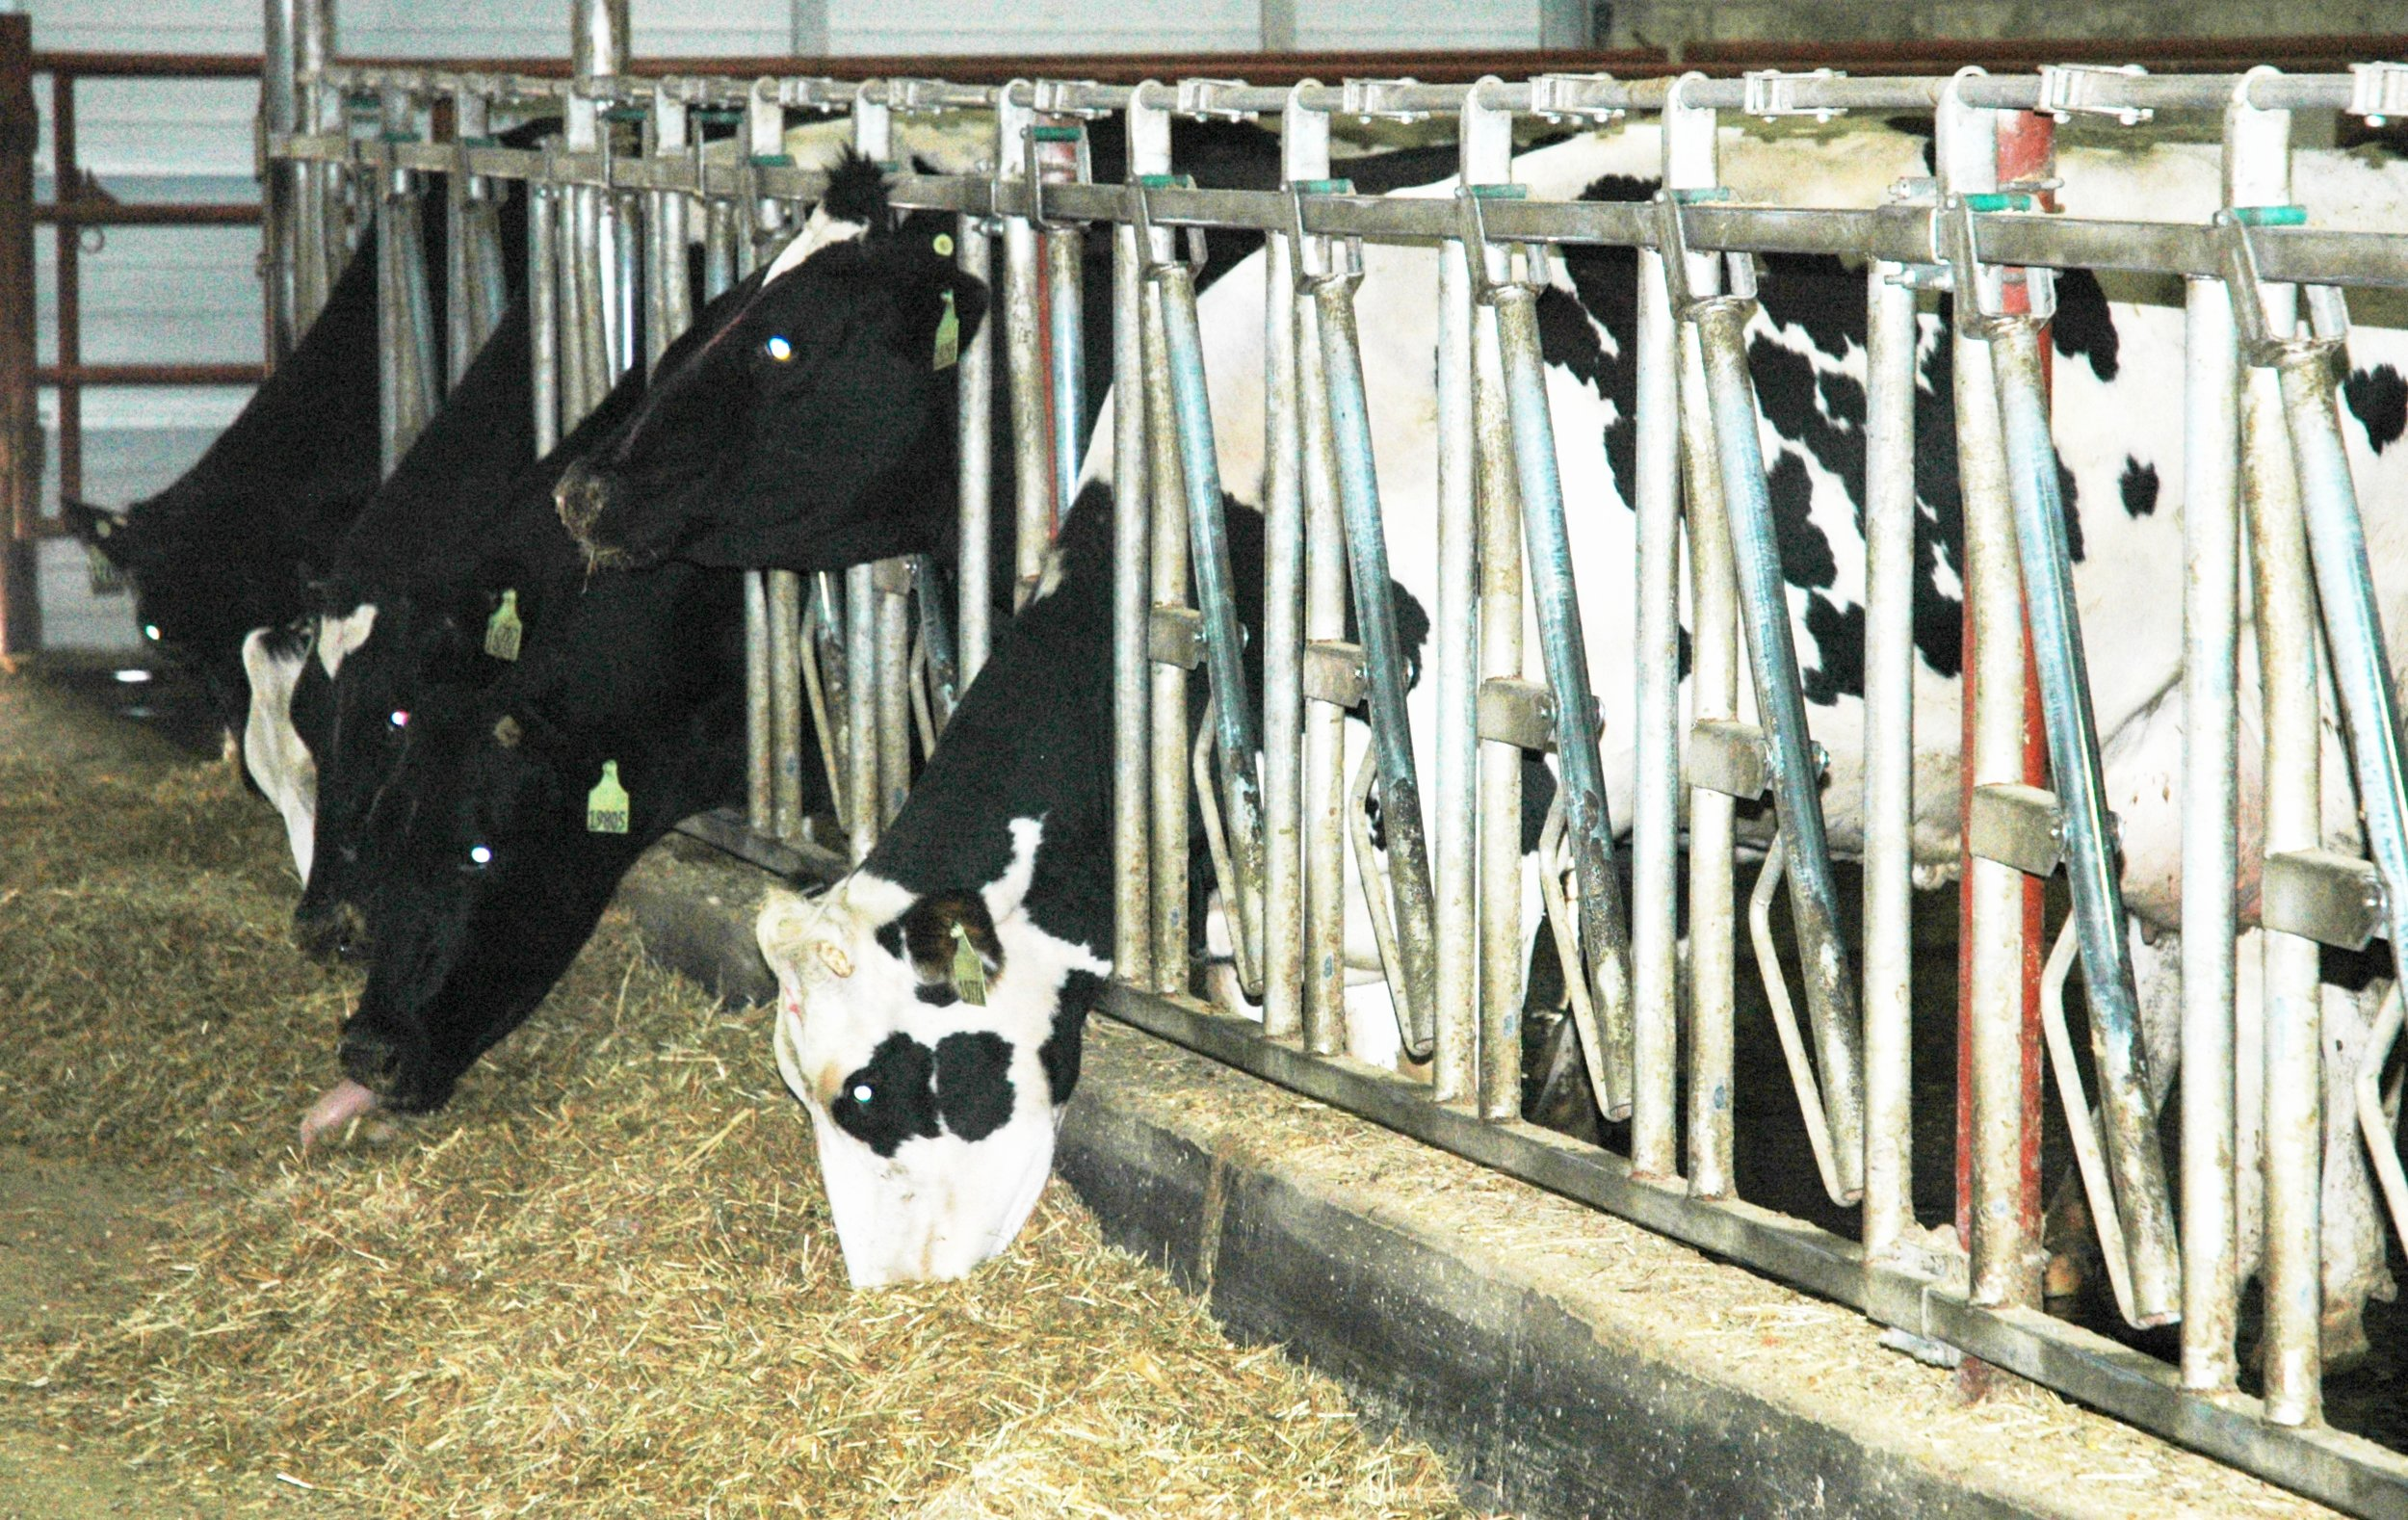 Dairy cows being fed feed in a barn.  Image by Texas Agrilife Extension